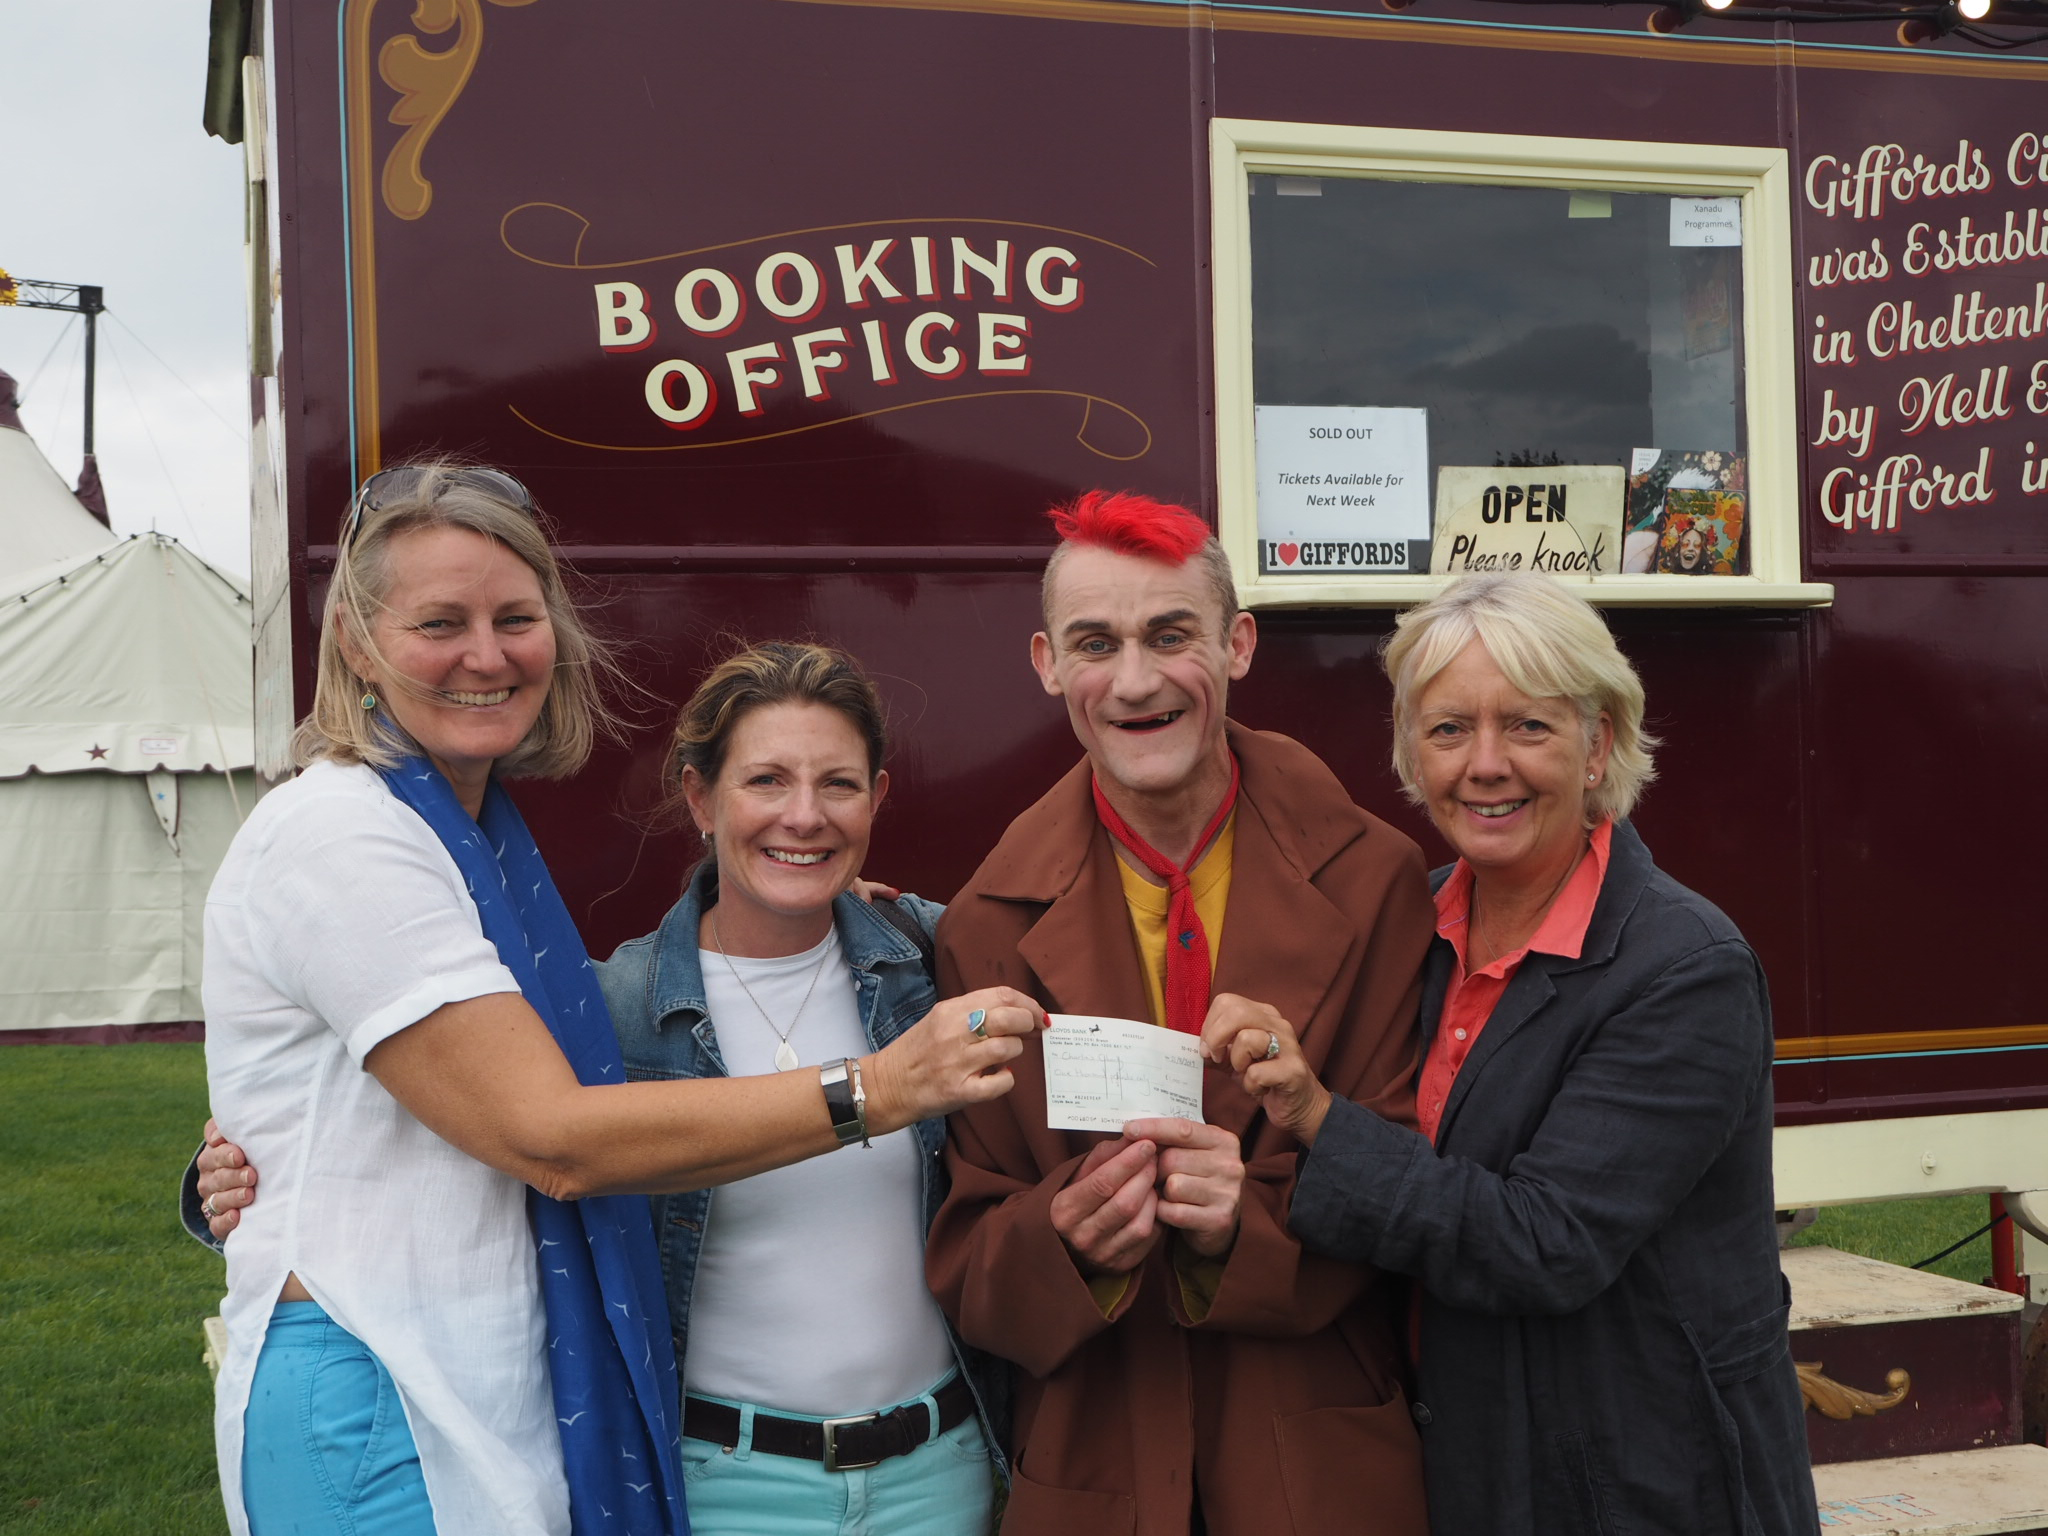 (Photo from left to right) Di Wilson, Abigail Gayer, Tweedy and Jane Lamb of Charlie's Charity